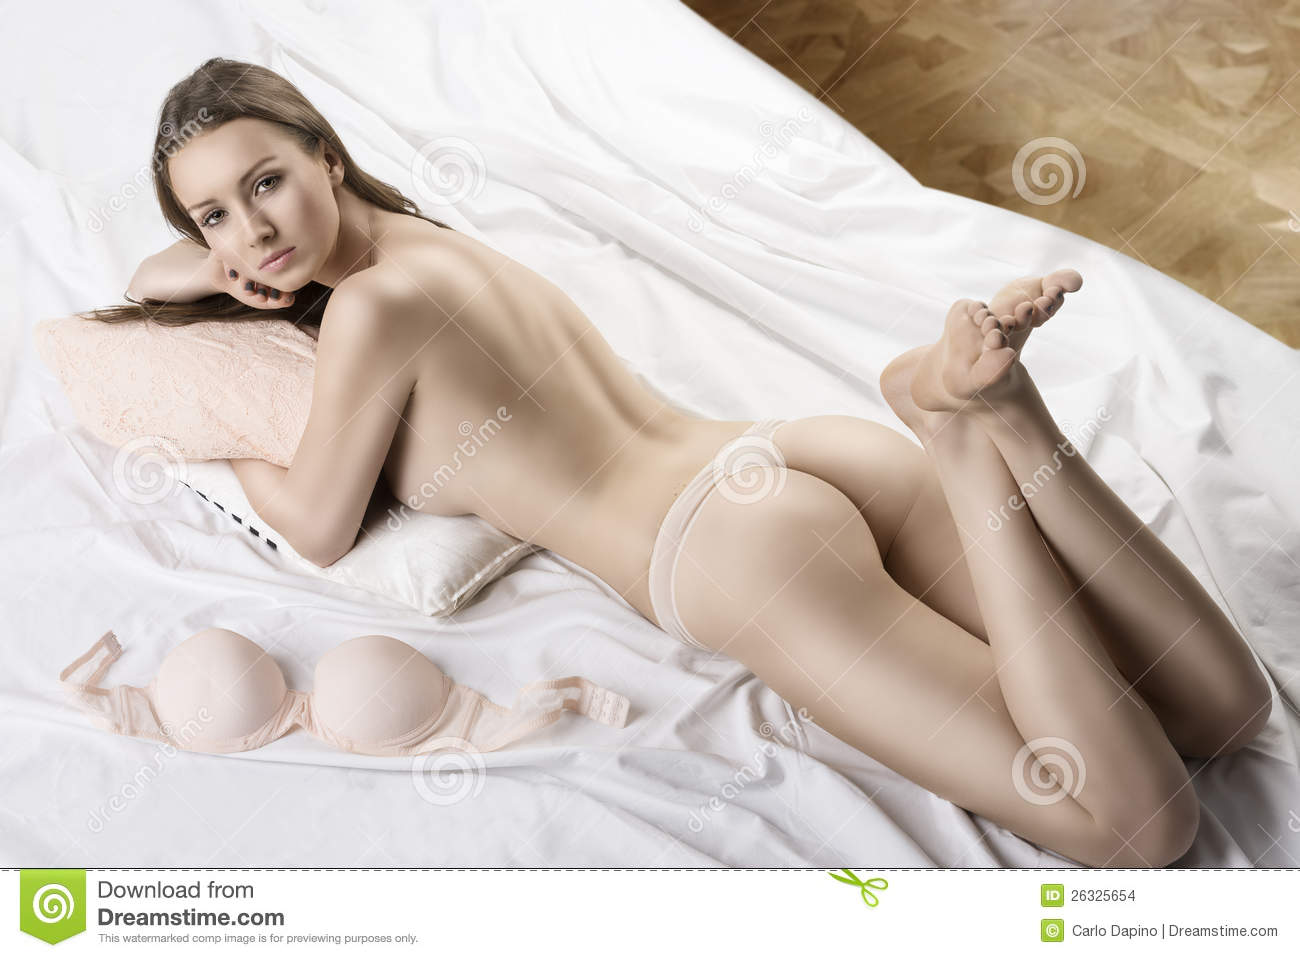 Sexy girl naked on bed